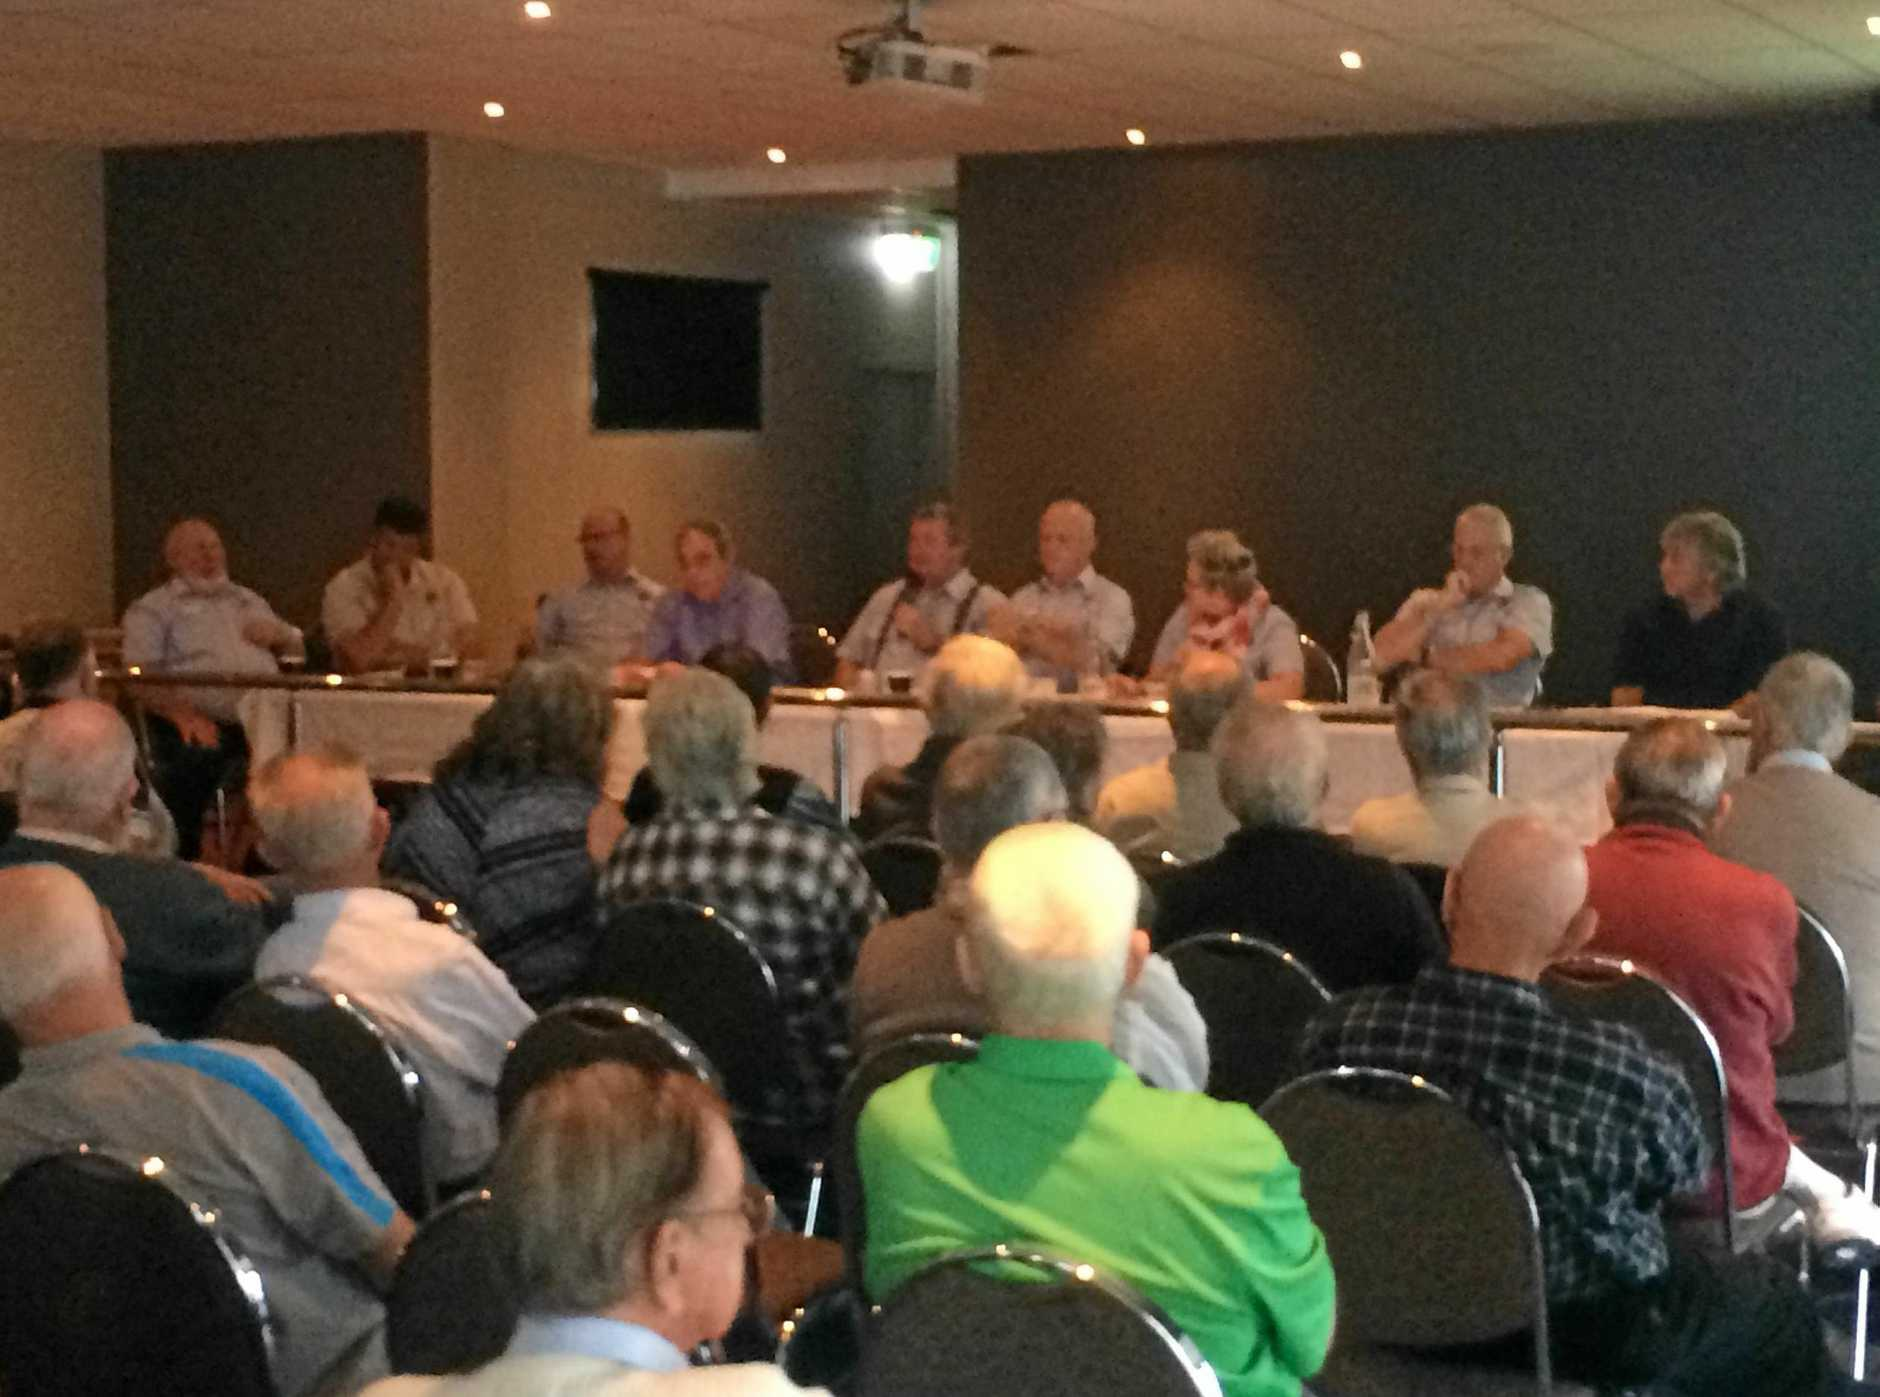 CONSULTATION: About 85 Gympie RSL sub branch members yesterday backed plans for an expanded RSL presence in the CBD.